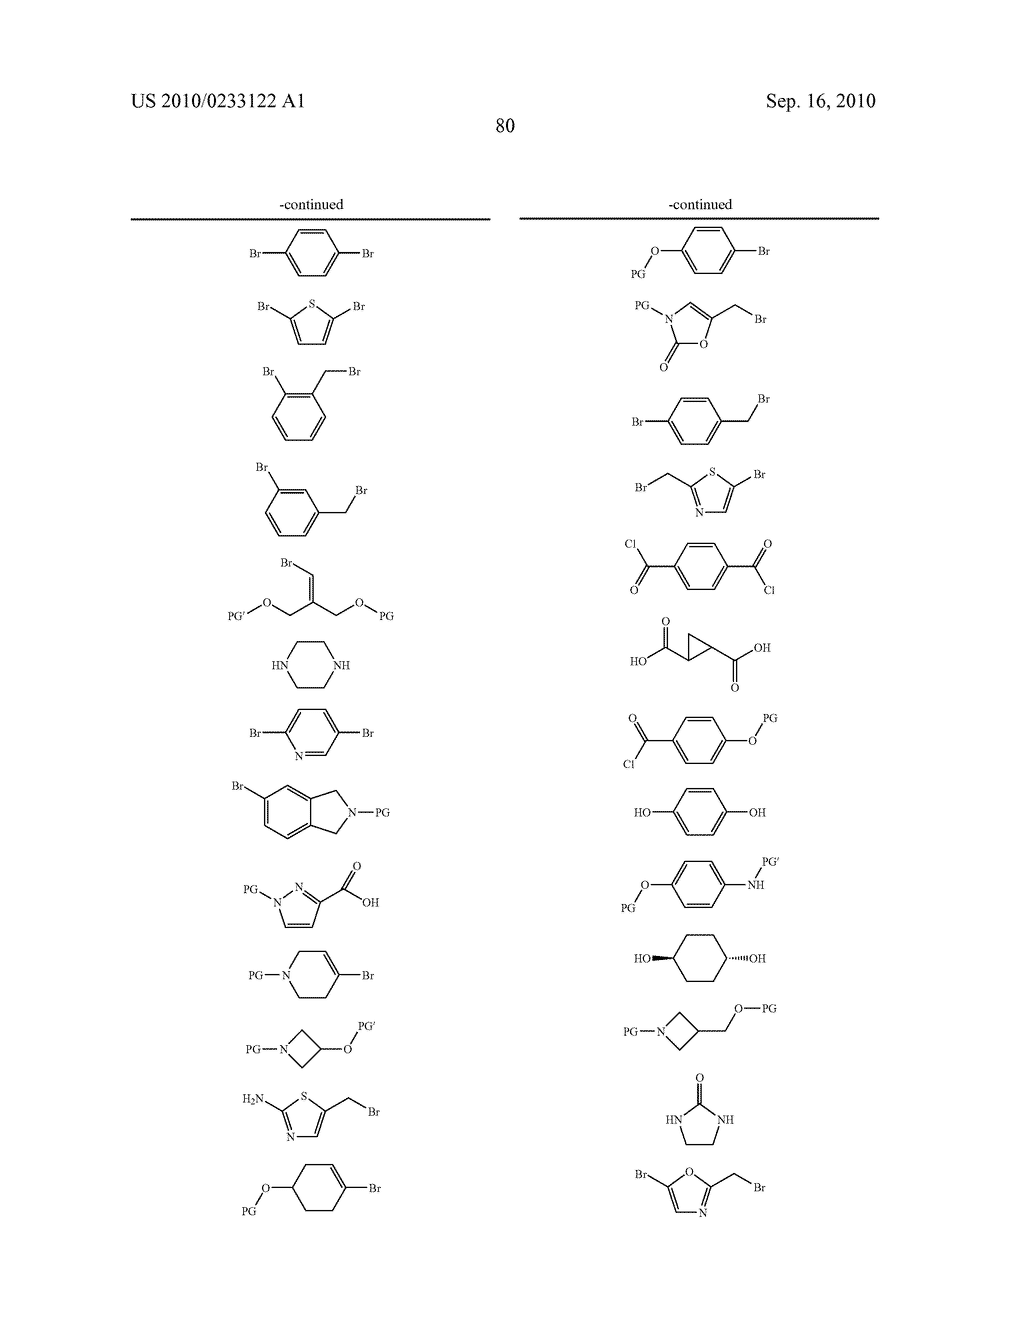 NOVEL BENZIMIDAZOLE DERIVATIVES - diagram, schematic, and image 81